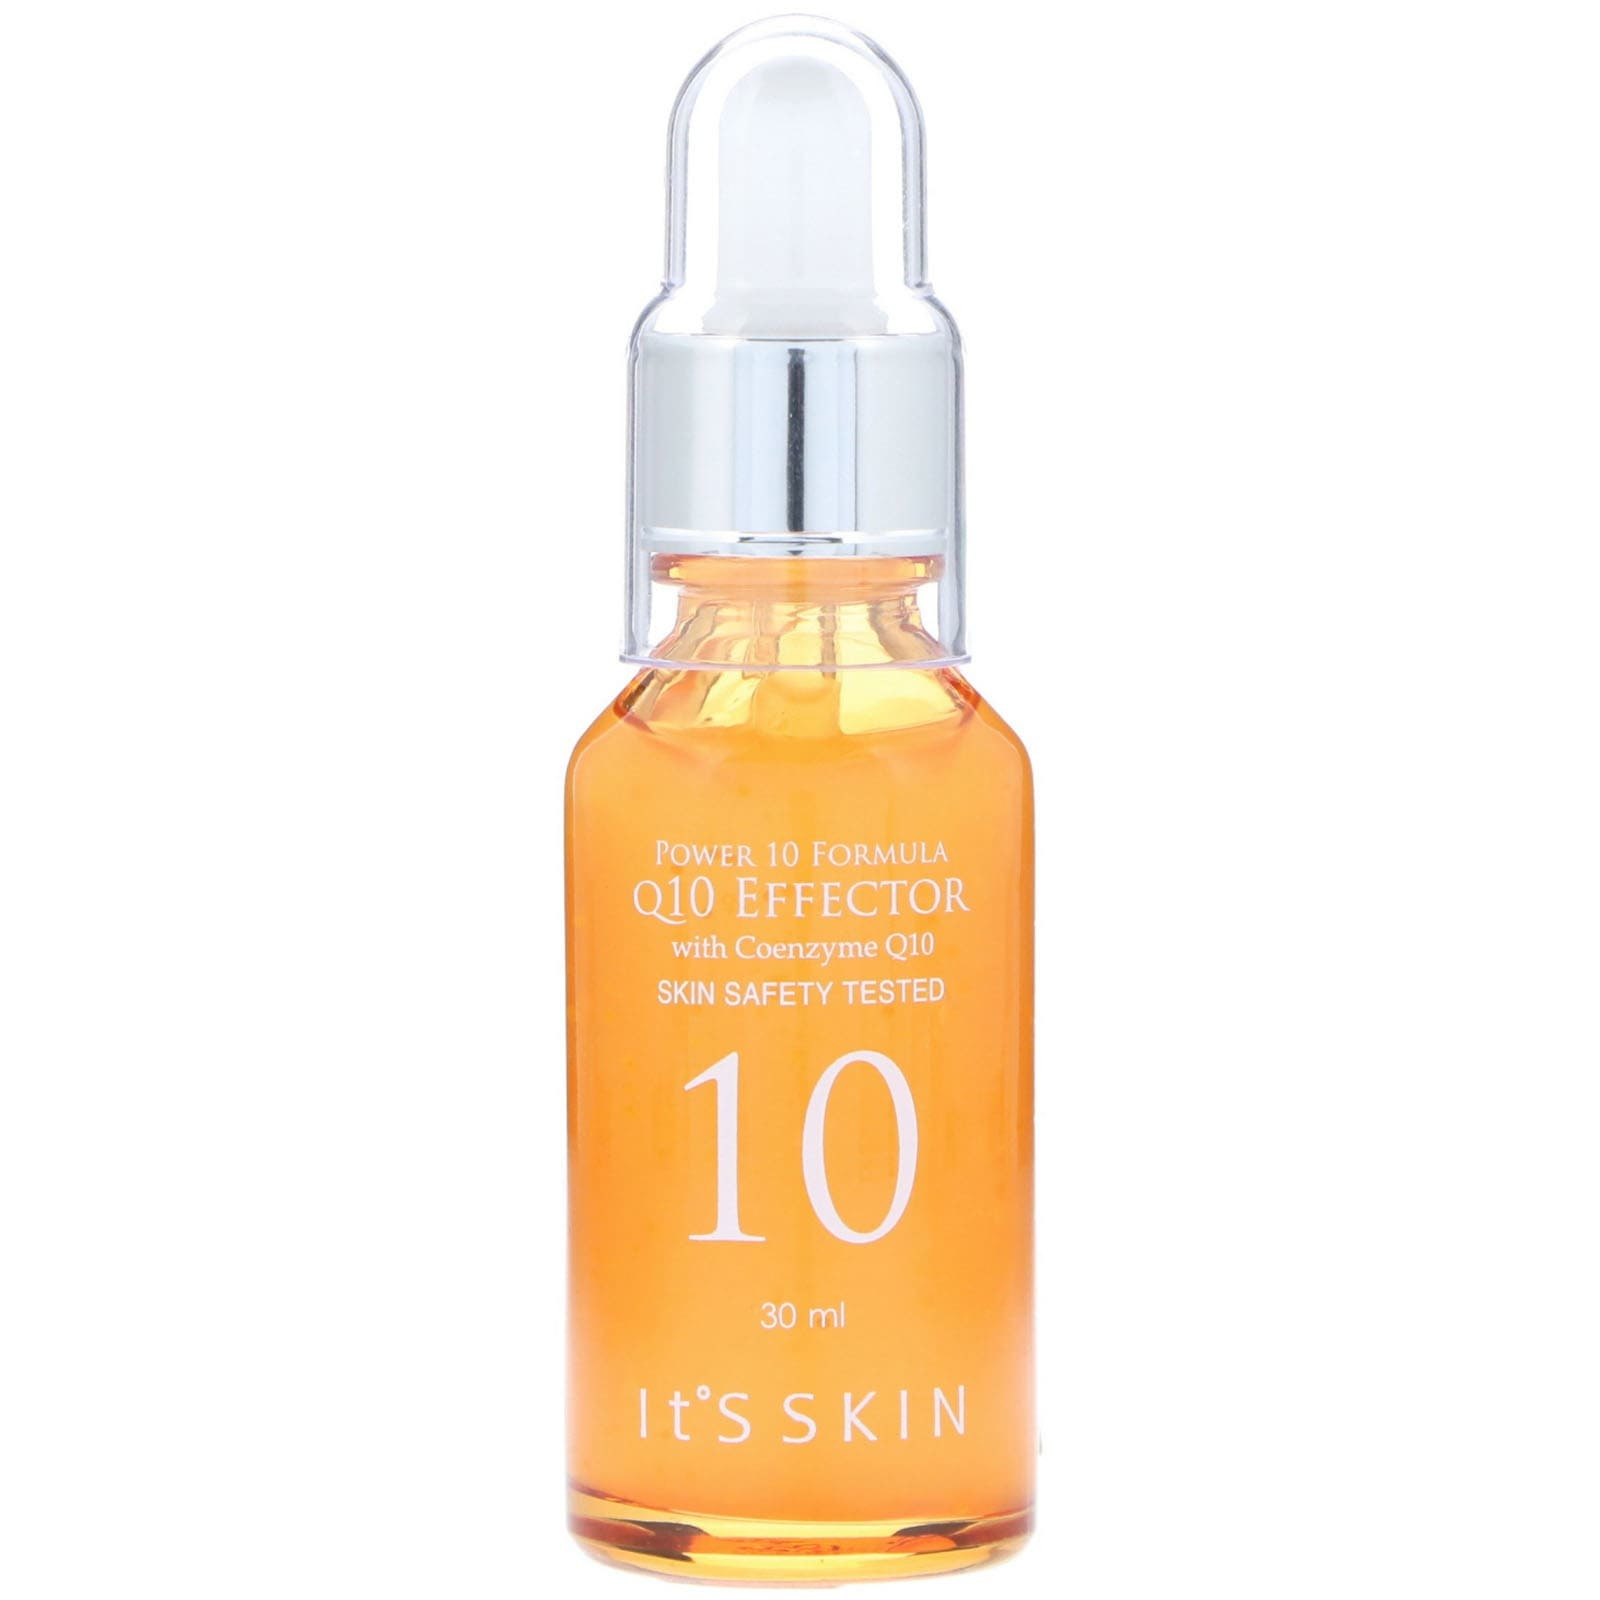 Лифтинг сыворотка для лица с коэнзимом Q10 - It's Skin Power 10 Formula Q10 Effector